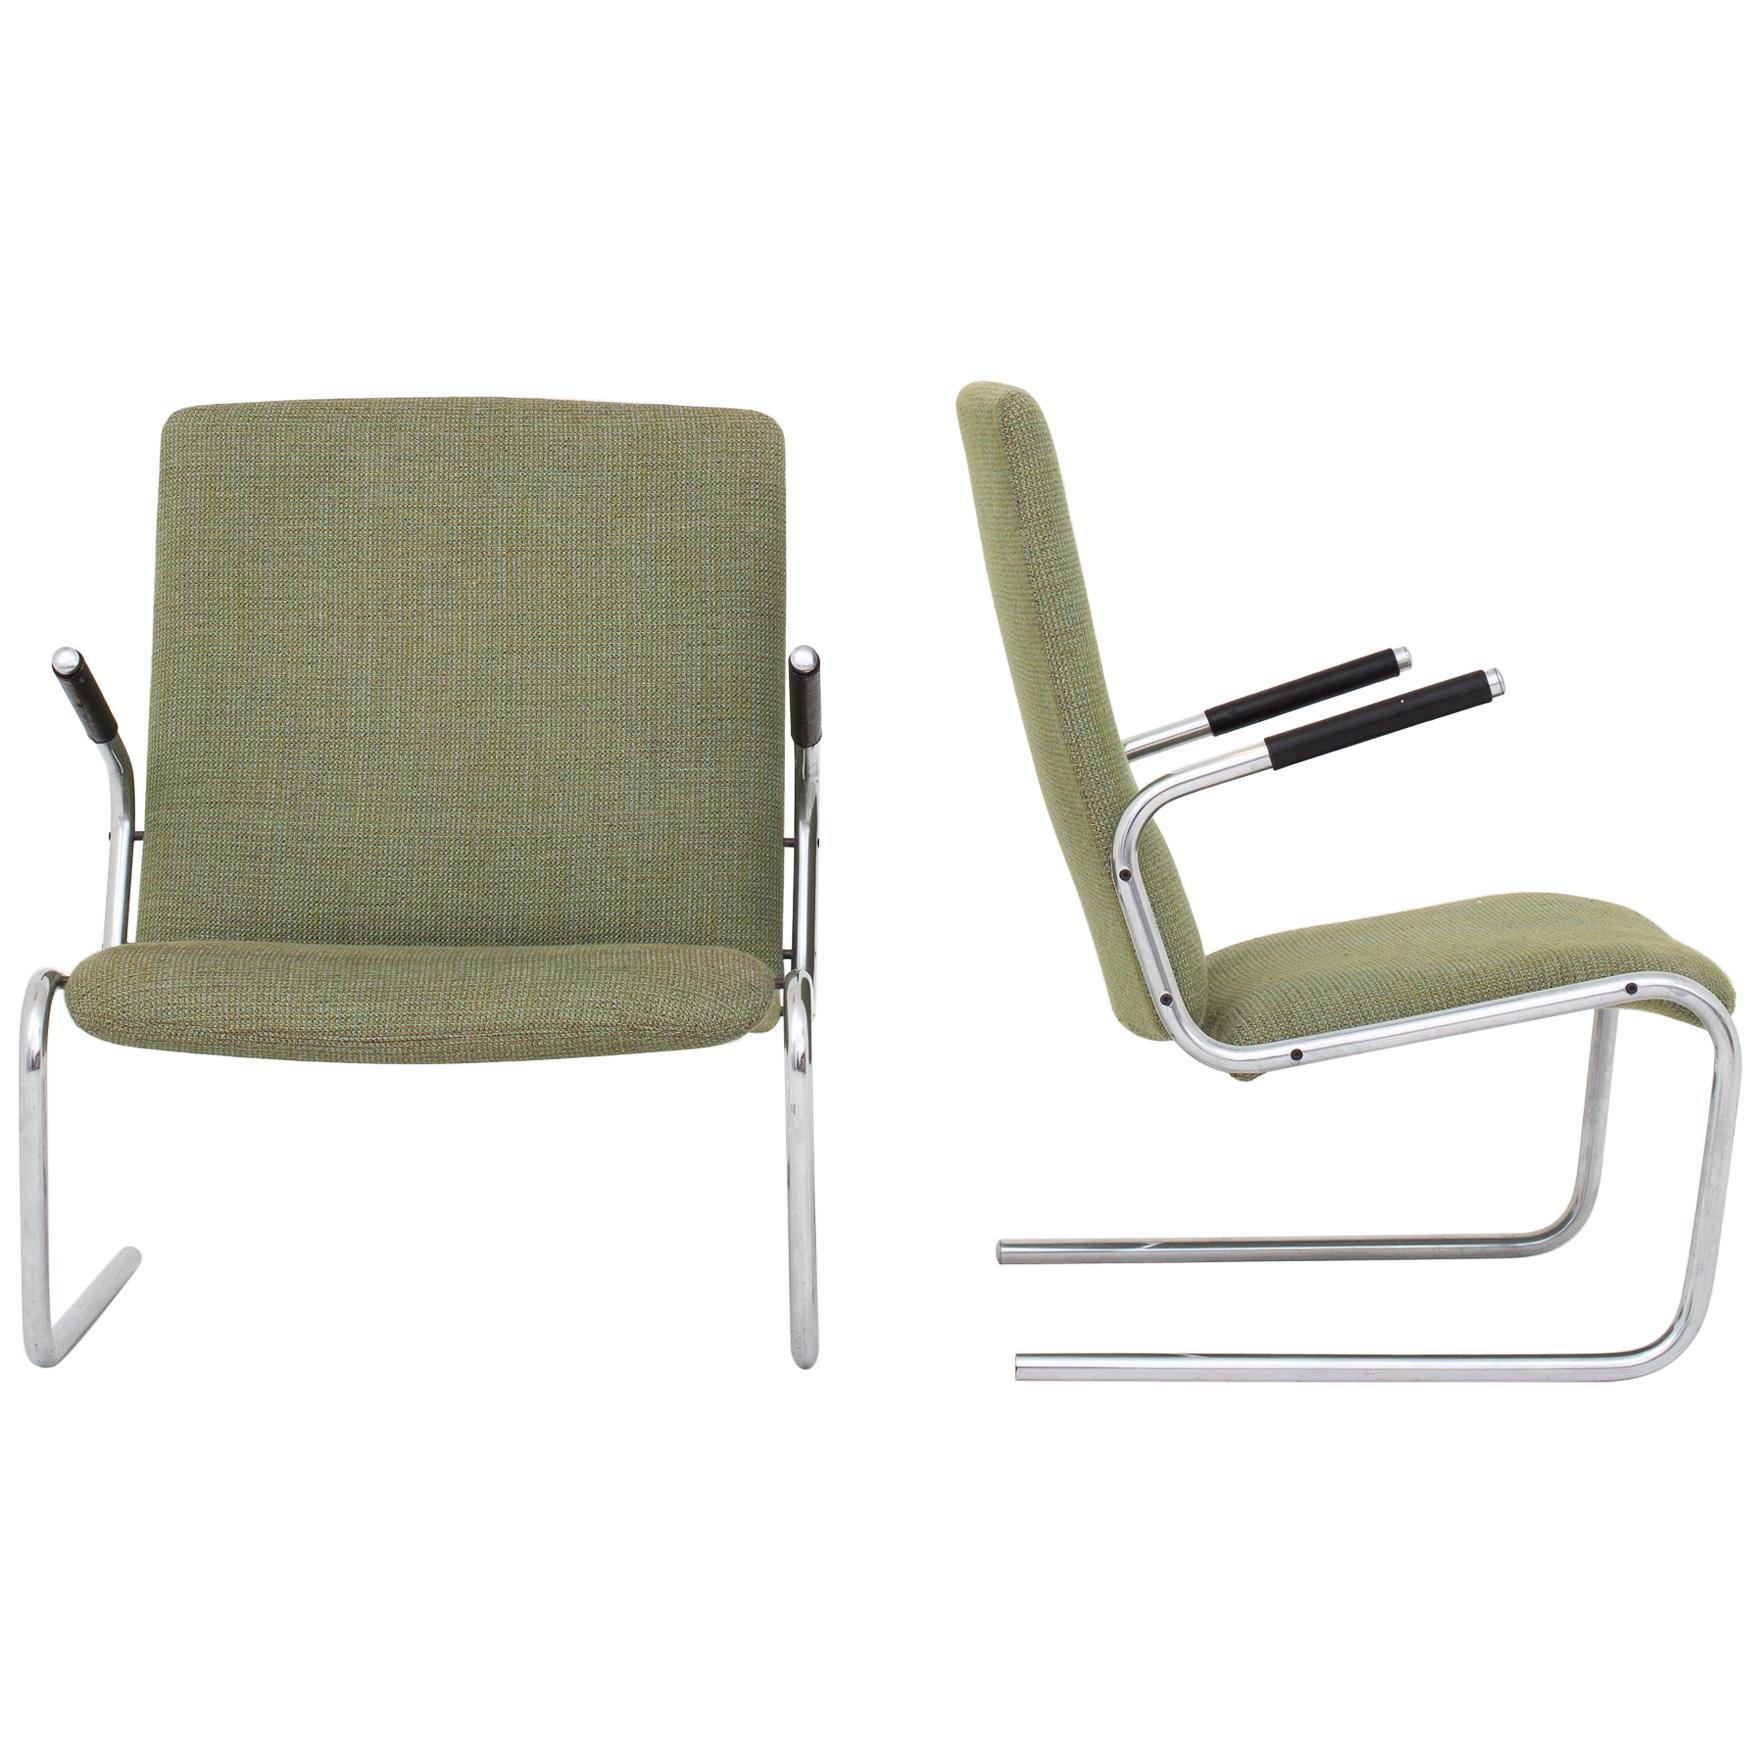 Pair of Easy Chairs by Preben Fabricius & Jørgen Kastholm